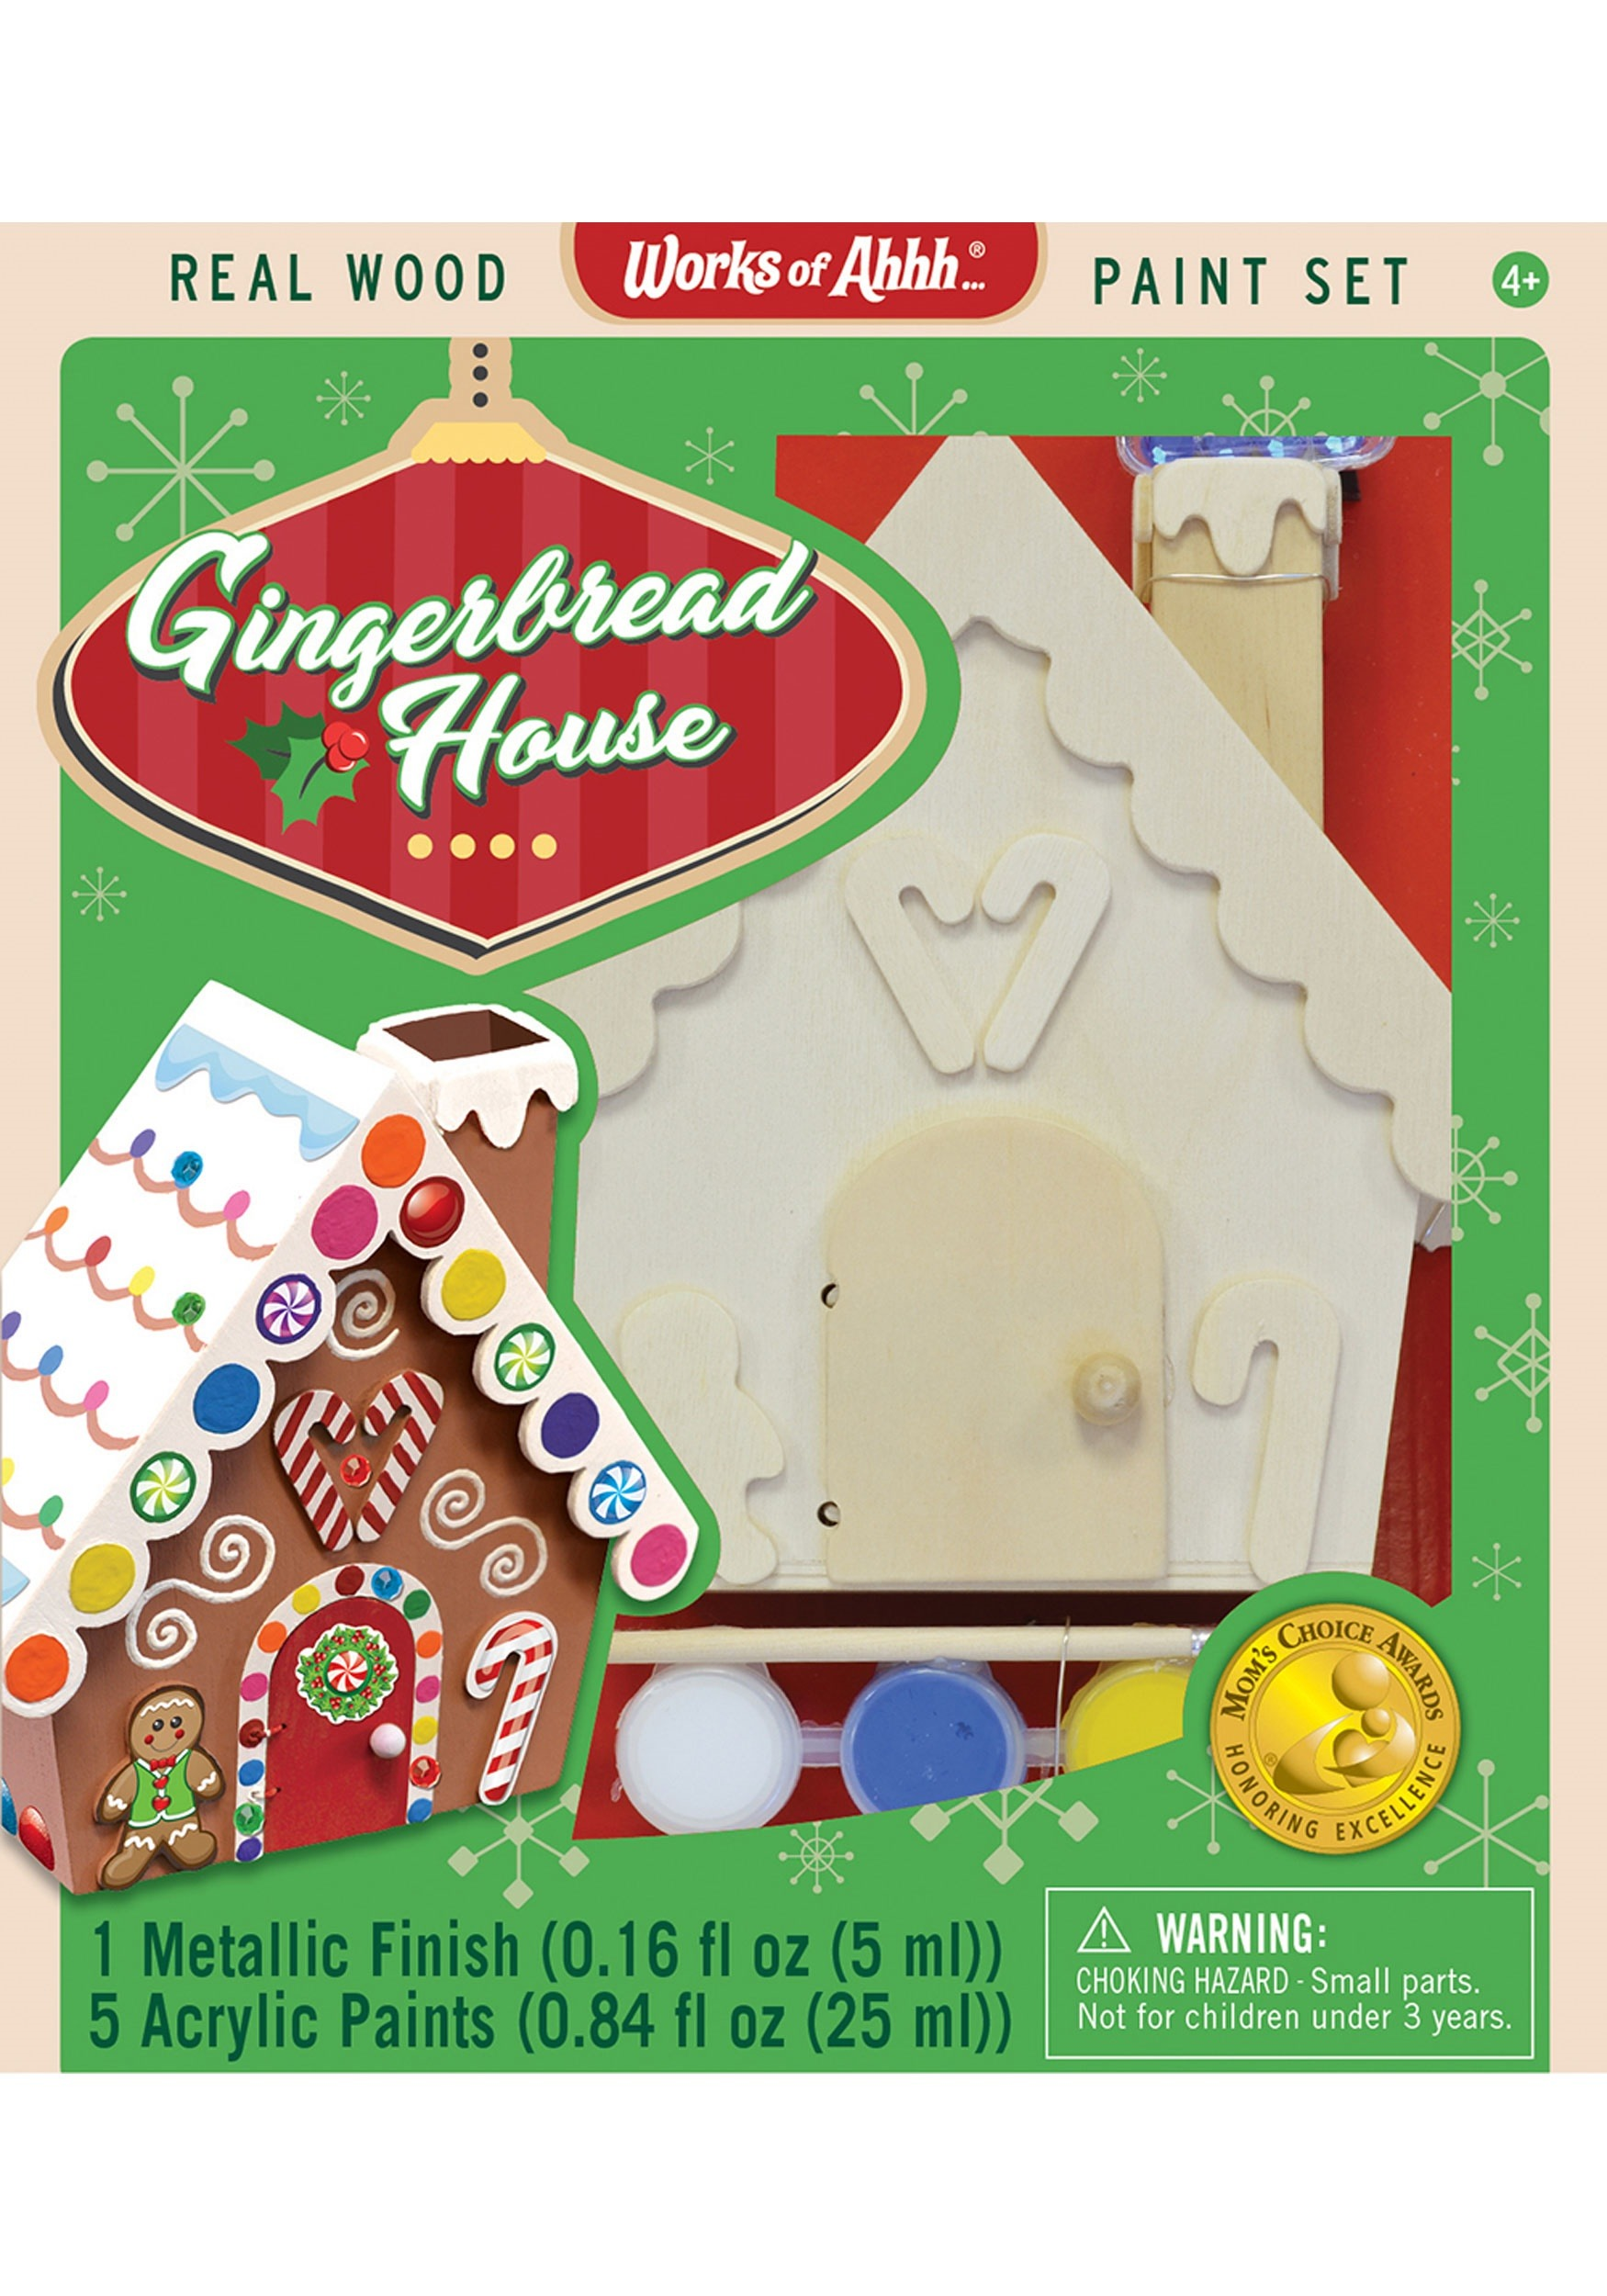 Works of Ahhh Gingerbread House Paint Set